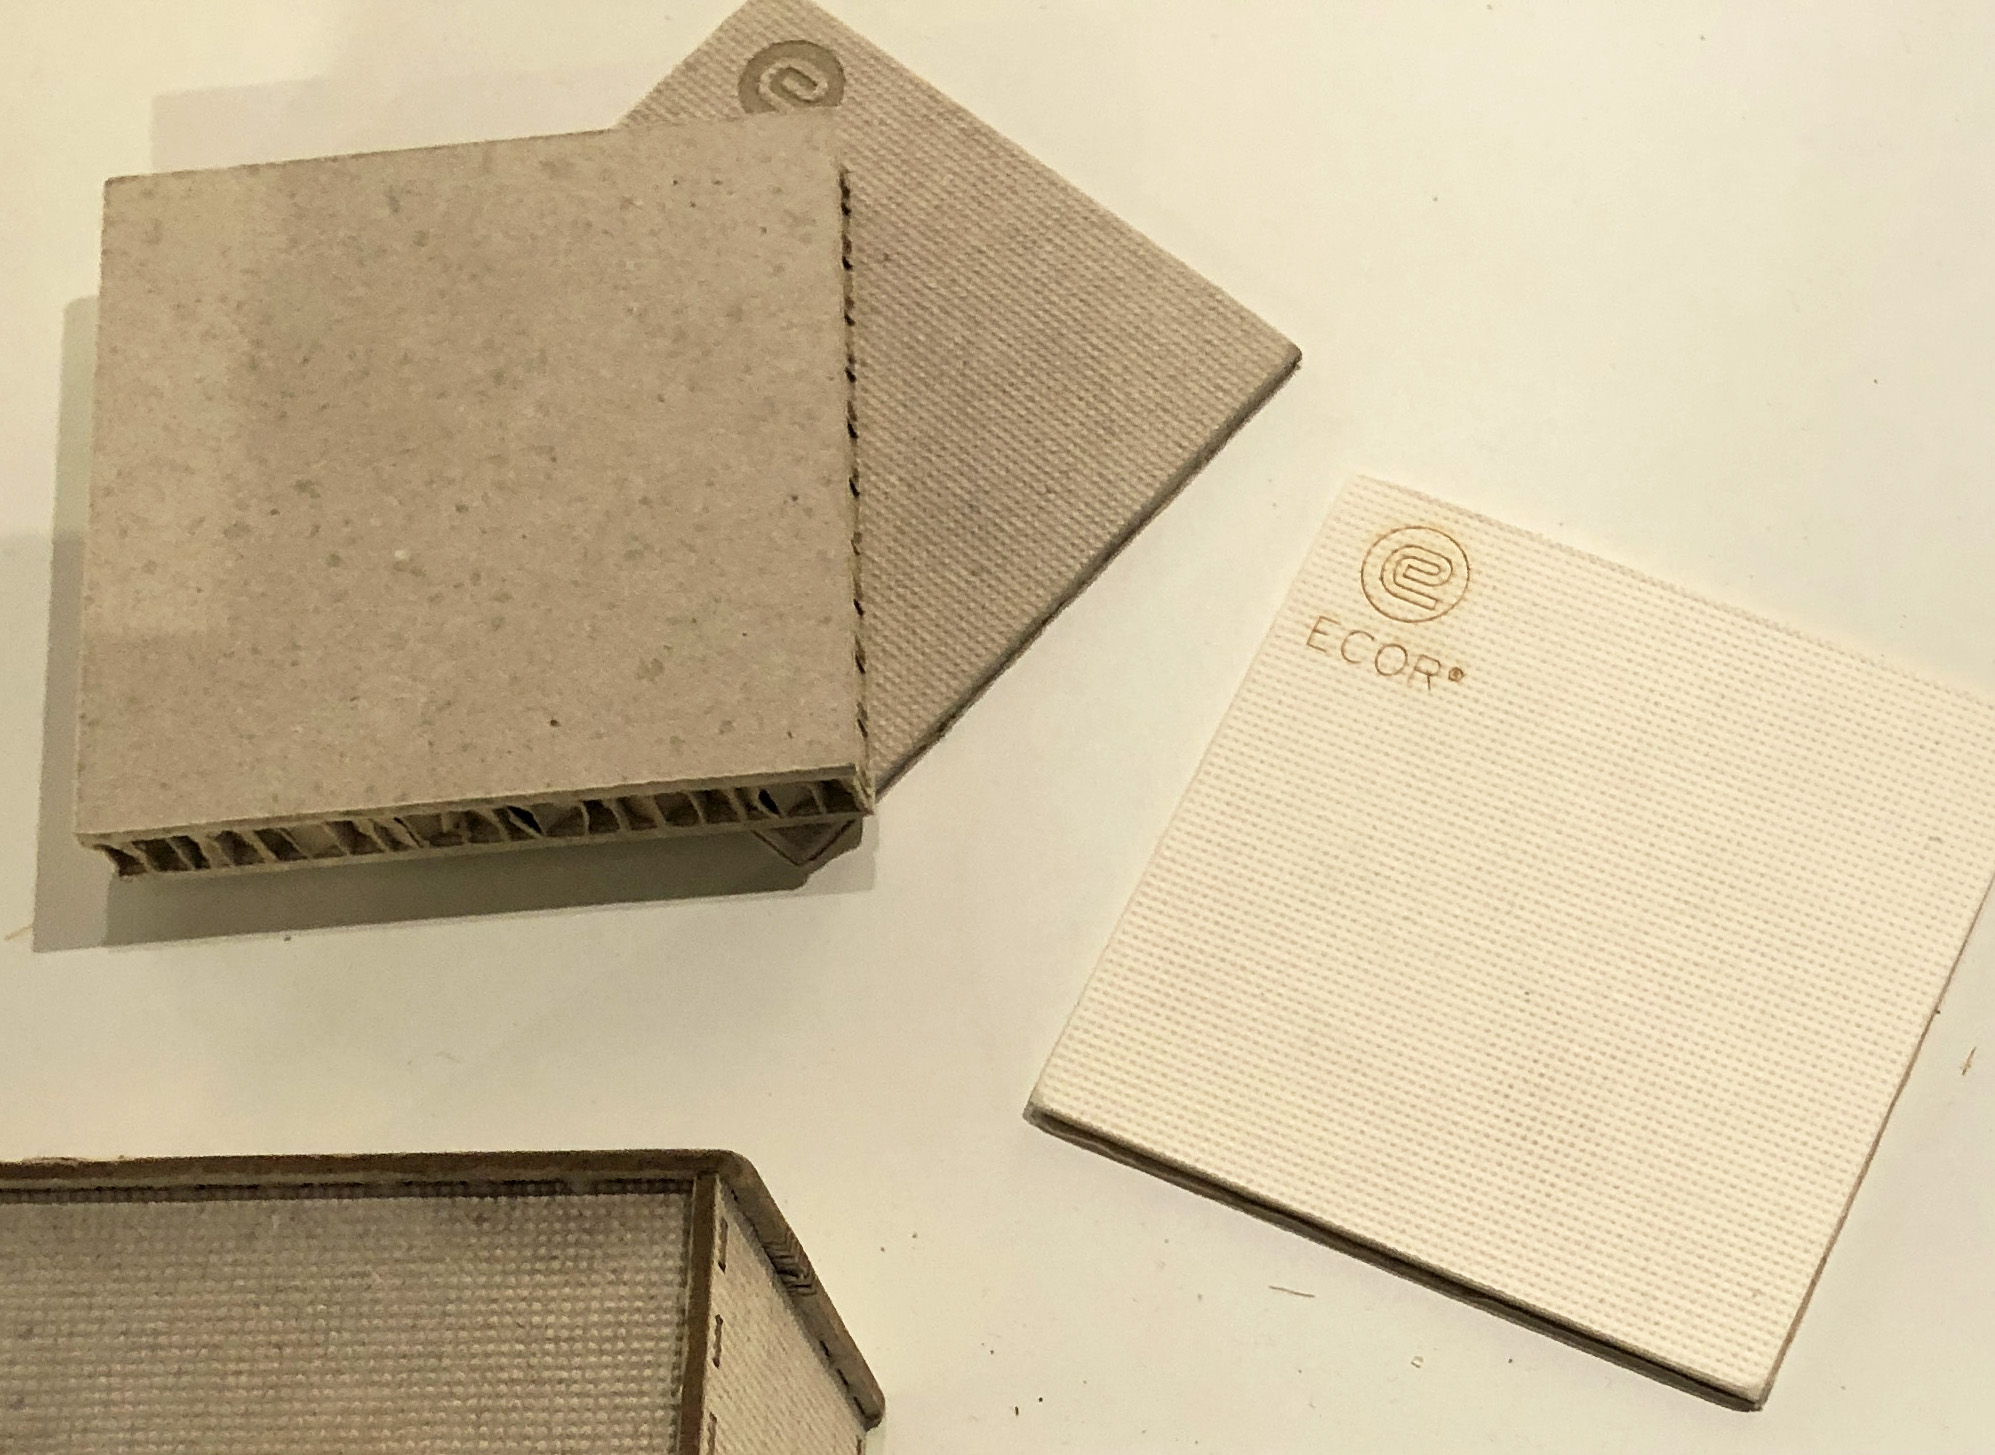 ECOR - This material is made only from waste, water and heat. A combination of old cardboard, newsprint, office waste, and agricultural fibres are used to create 100% recyclable panels for use in interiors, product design and more. This is a much needed solution to the critical waste disposal problems of today.Find out more: www.ecorglobal.com | @ECORglobal